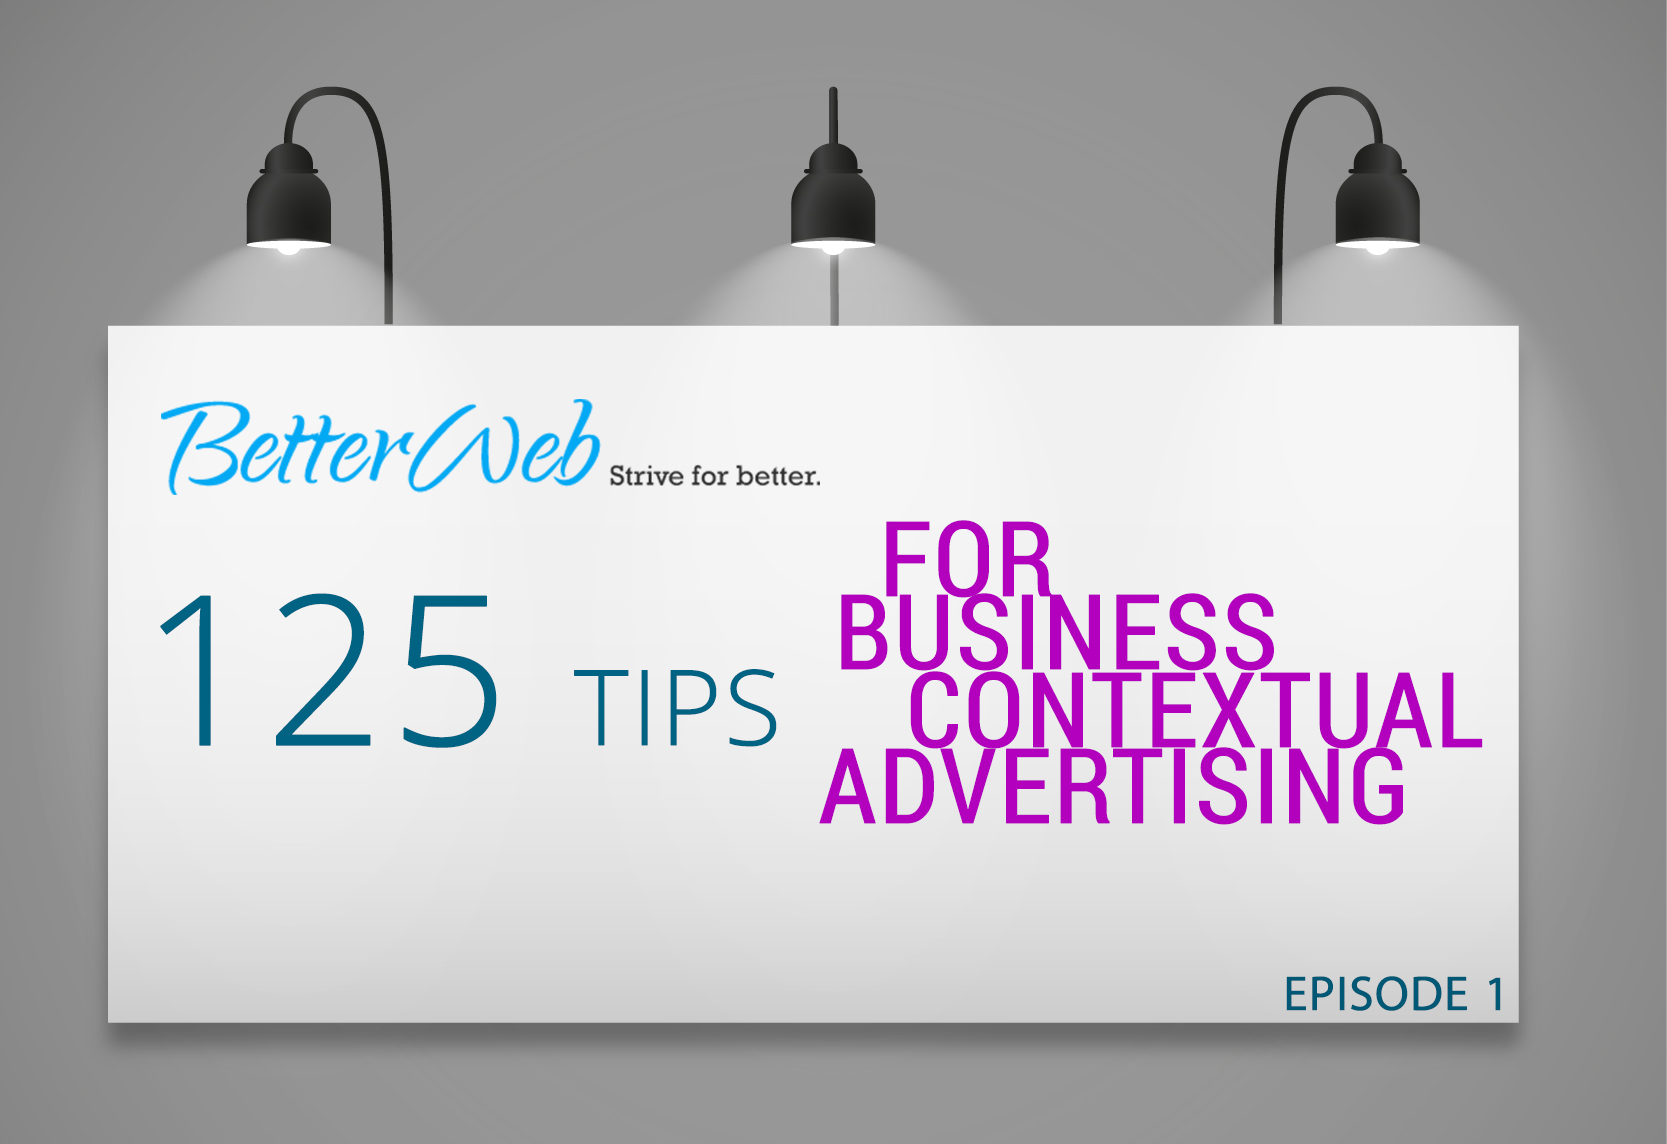 125 Tips For Business Contextual Advertising. Episode 1